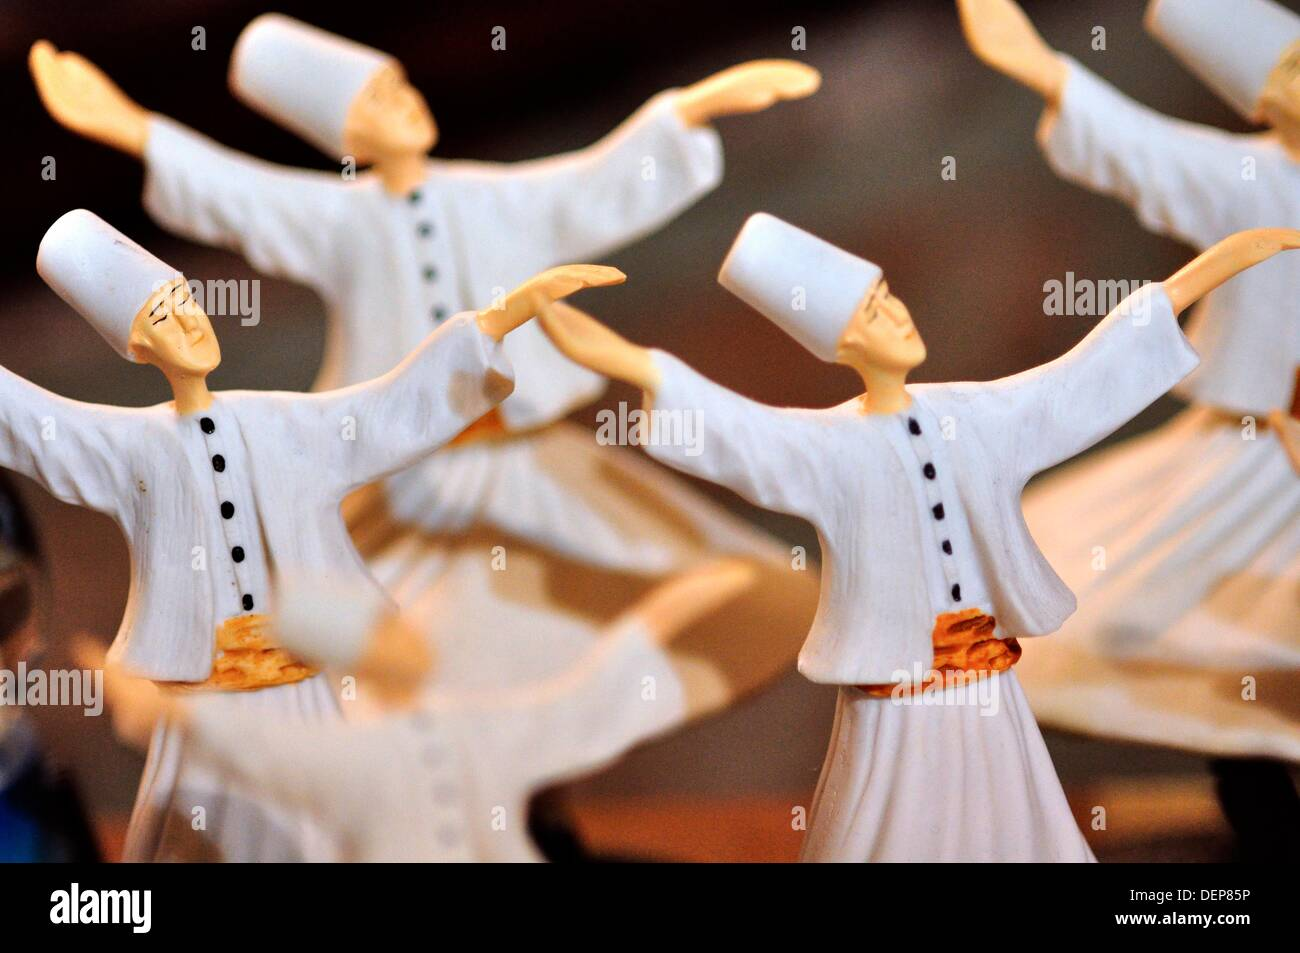 Turkey, Istanbul, Shop Display, Whirling Dervish Souvenirs - Stock Image